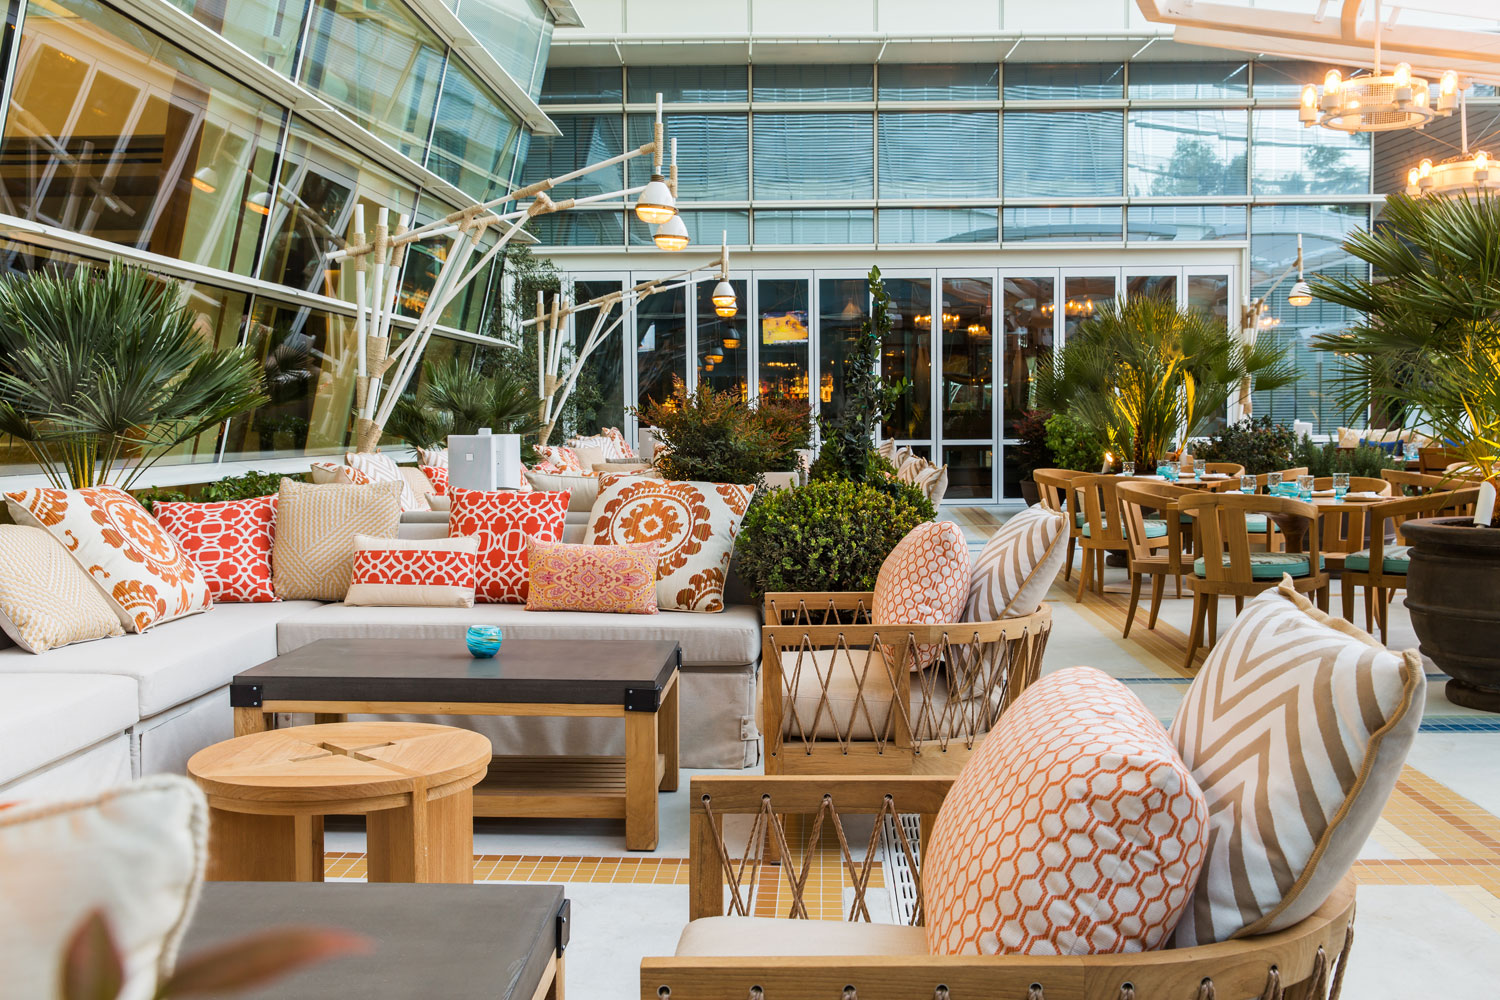 Herringbone At Aria Has An Outdoor Patio Overlooking The Pool Photo Courtesy Of